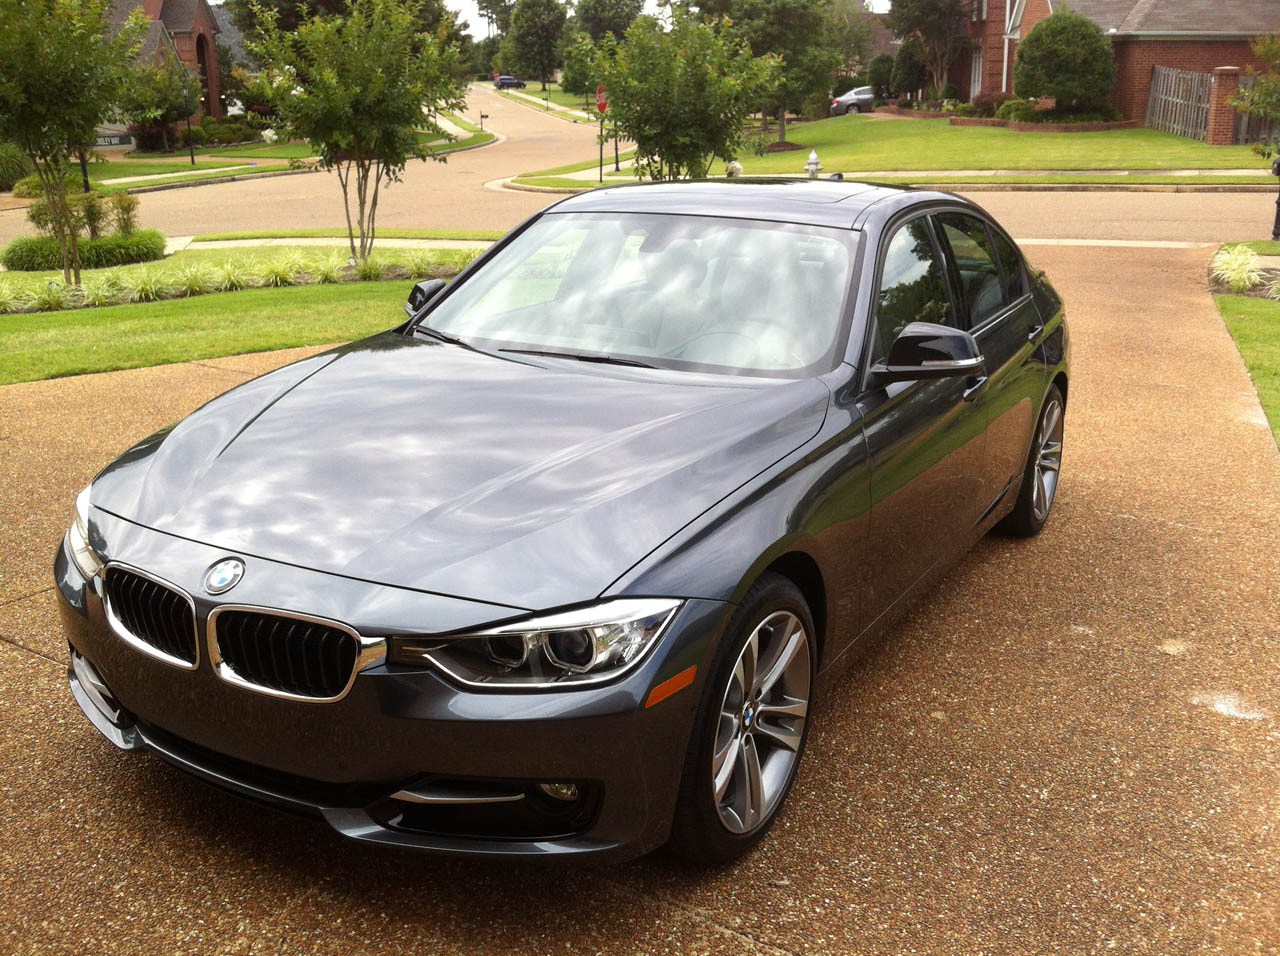 Mineral Grey Metallic 2012 BMW 335i